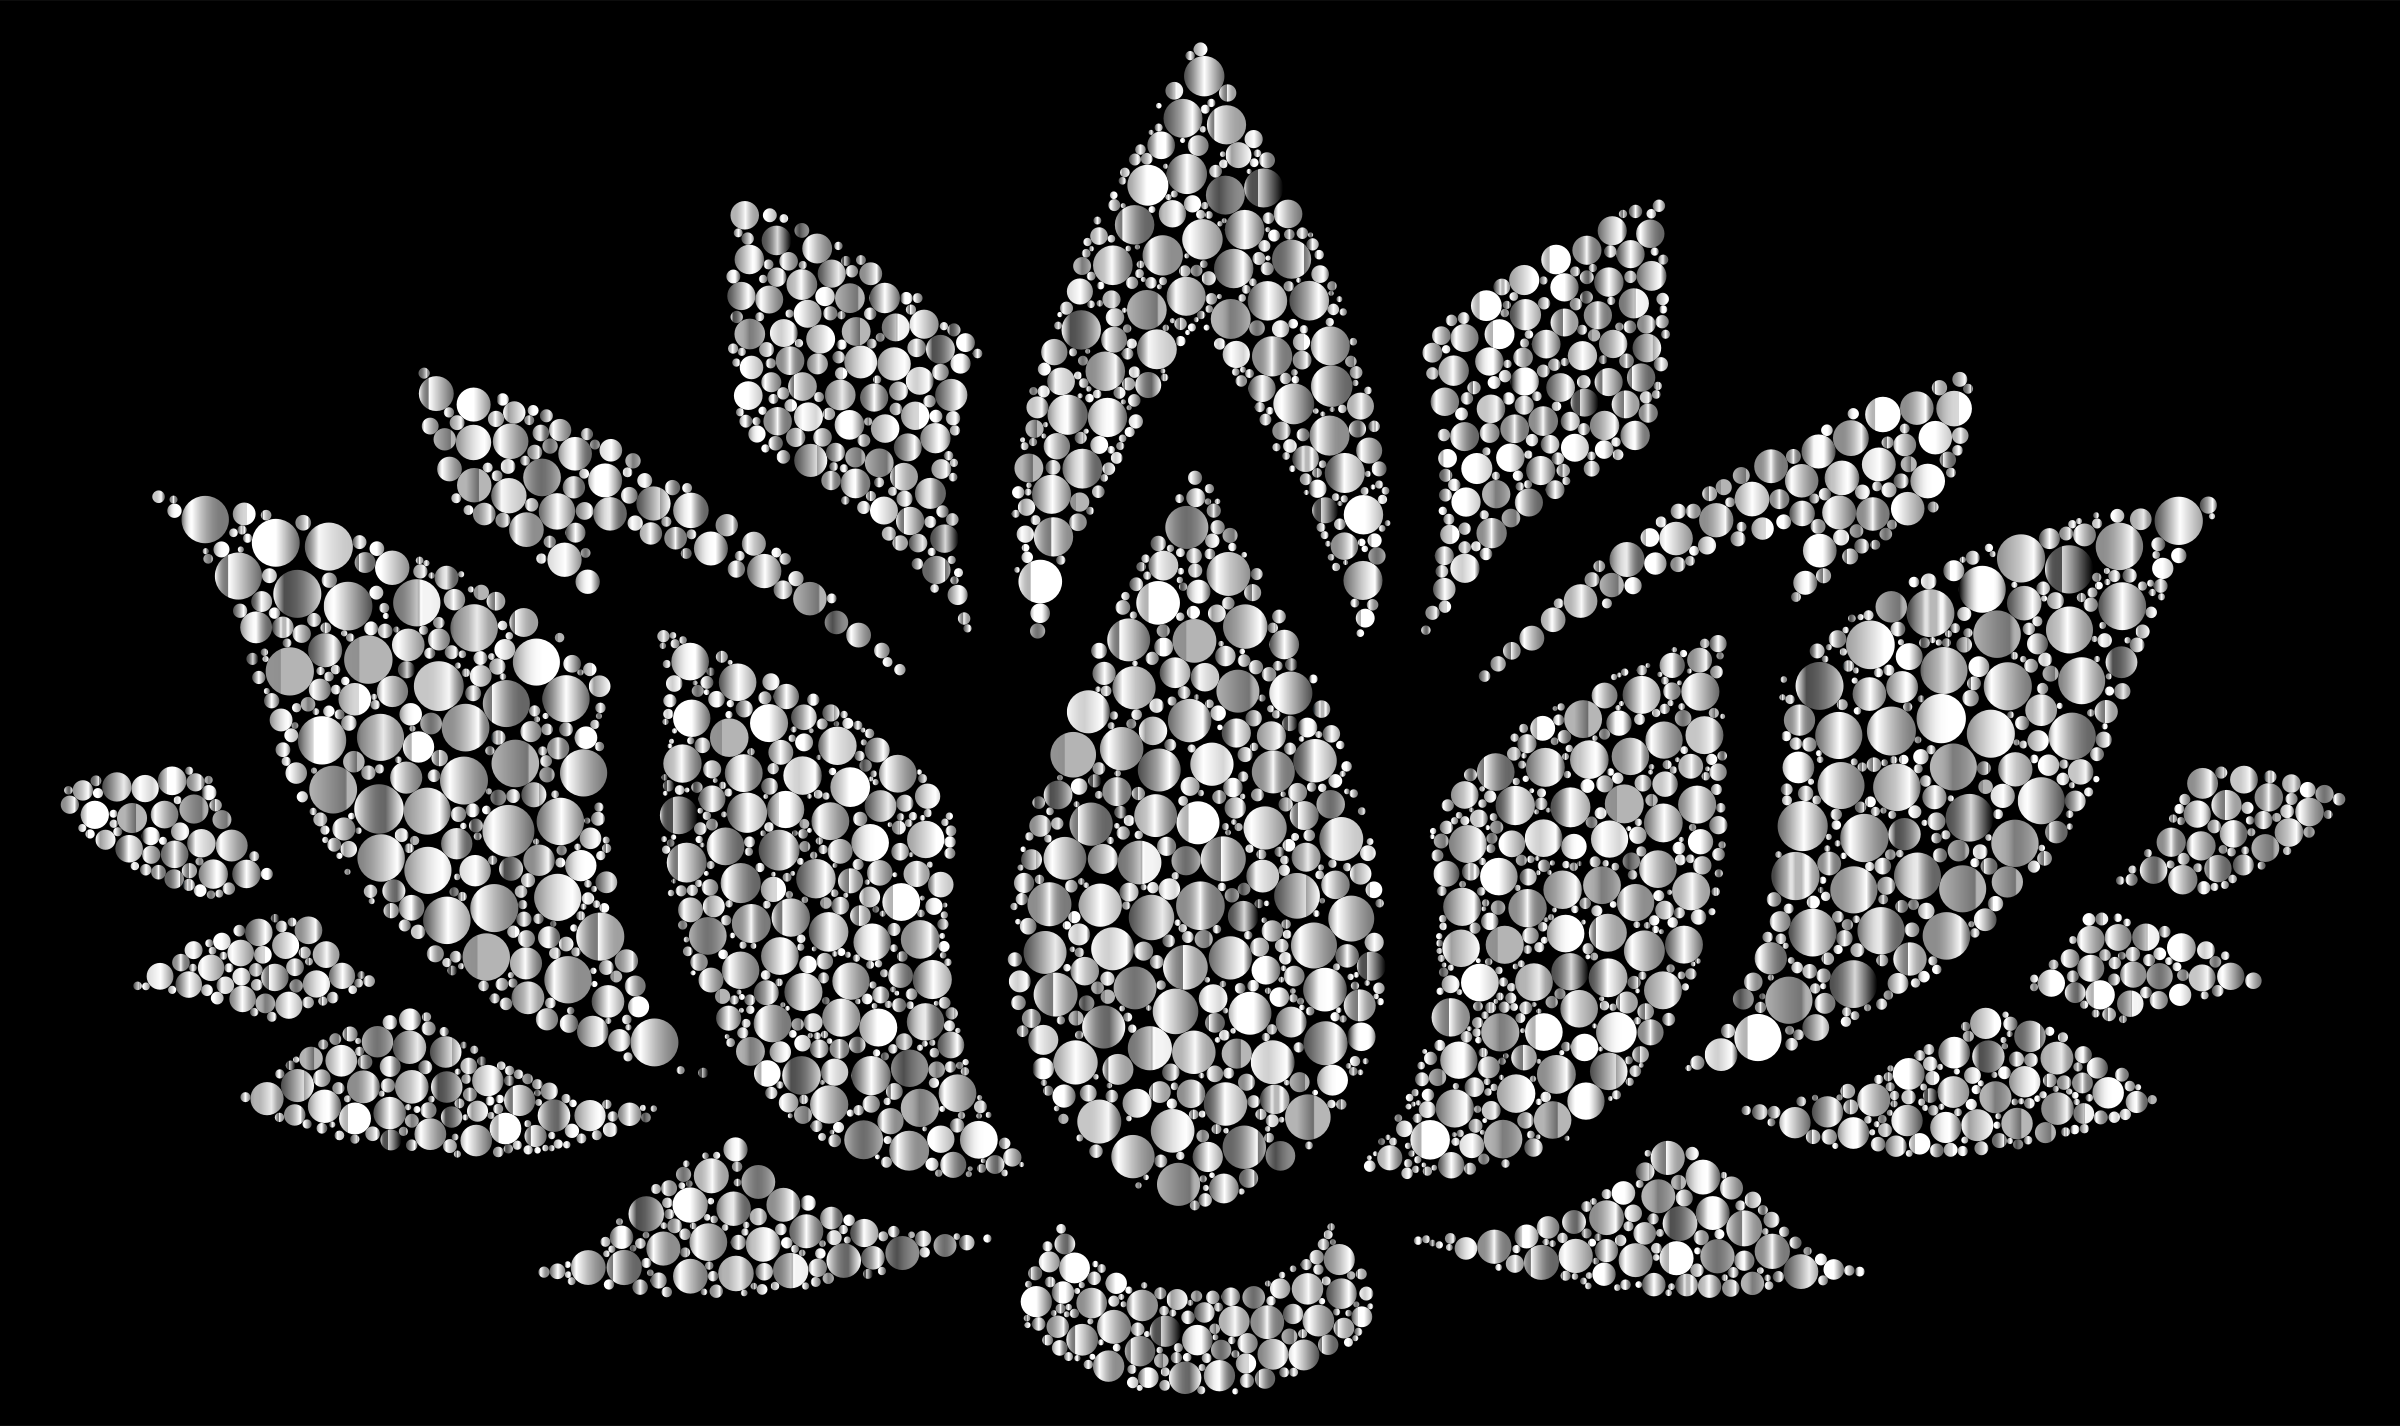 Prismatic Lotus Flower Silhouette 6 Circles 9 by GDJ